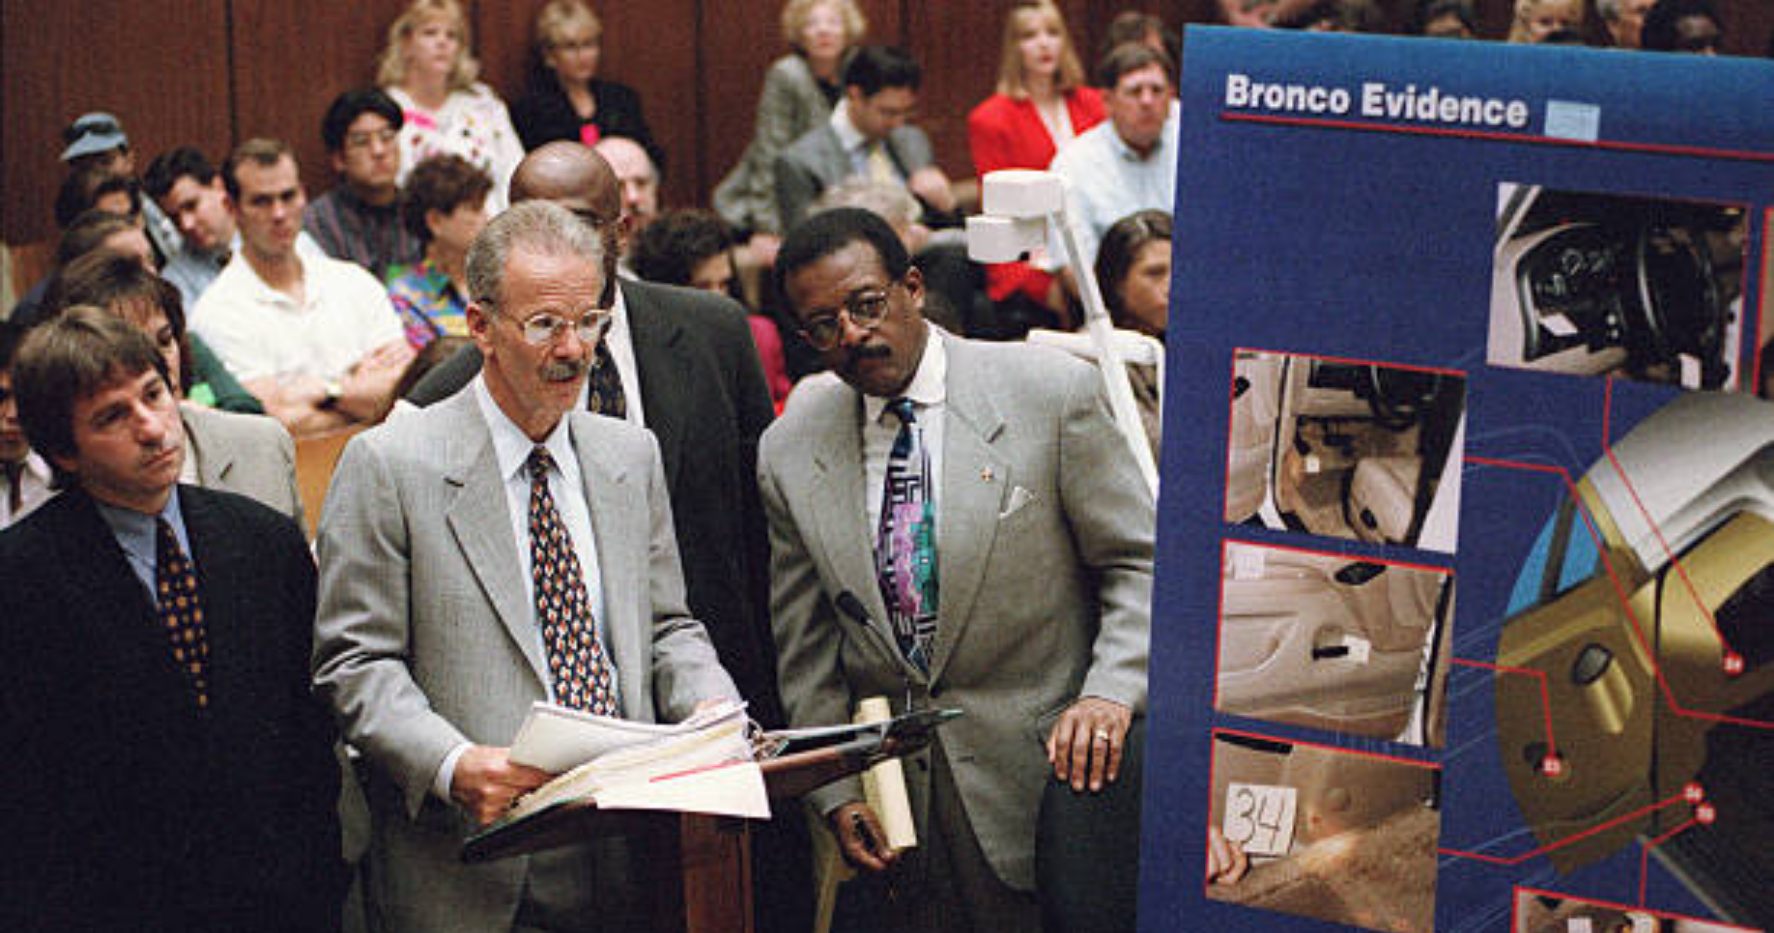 Rock presenting DNA evidence during the OJ Simpson trial